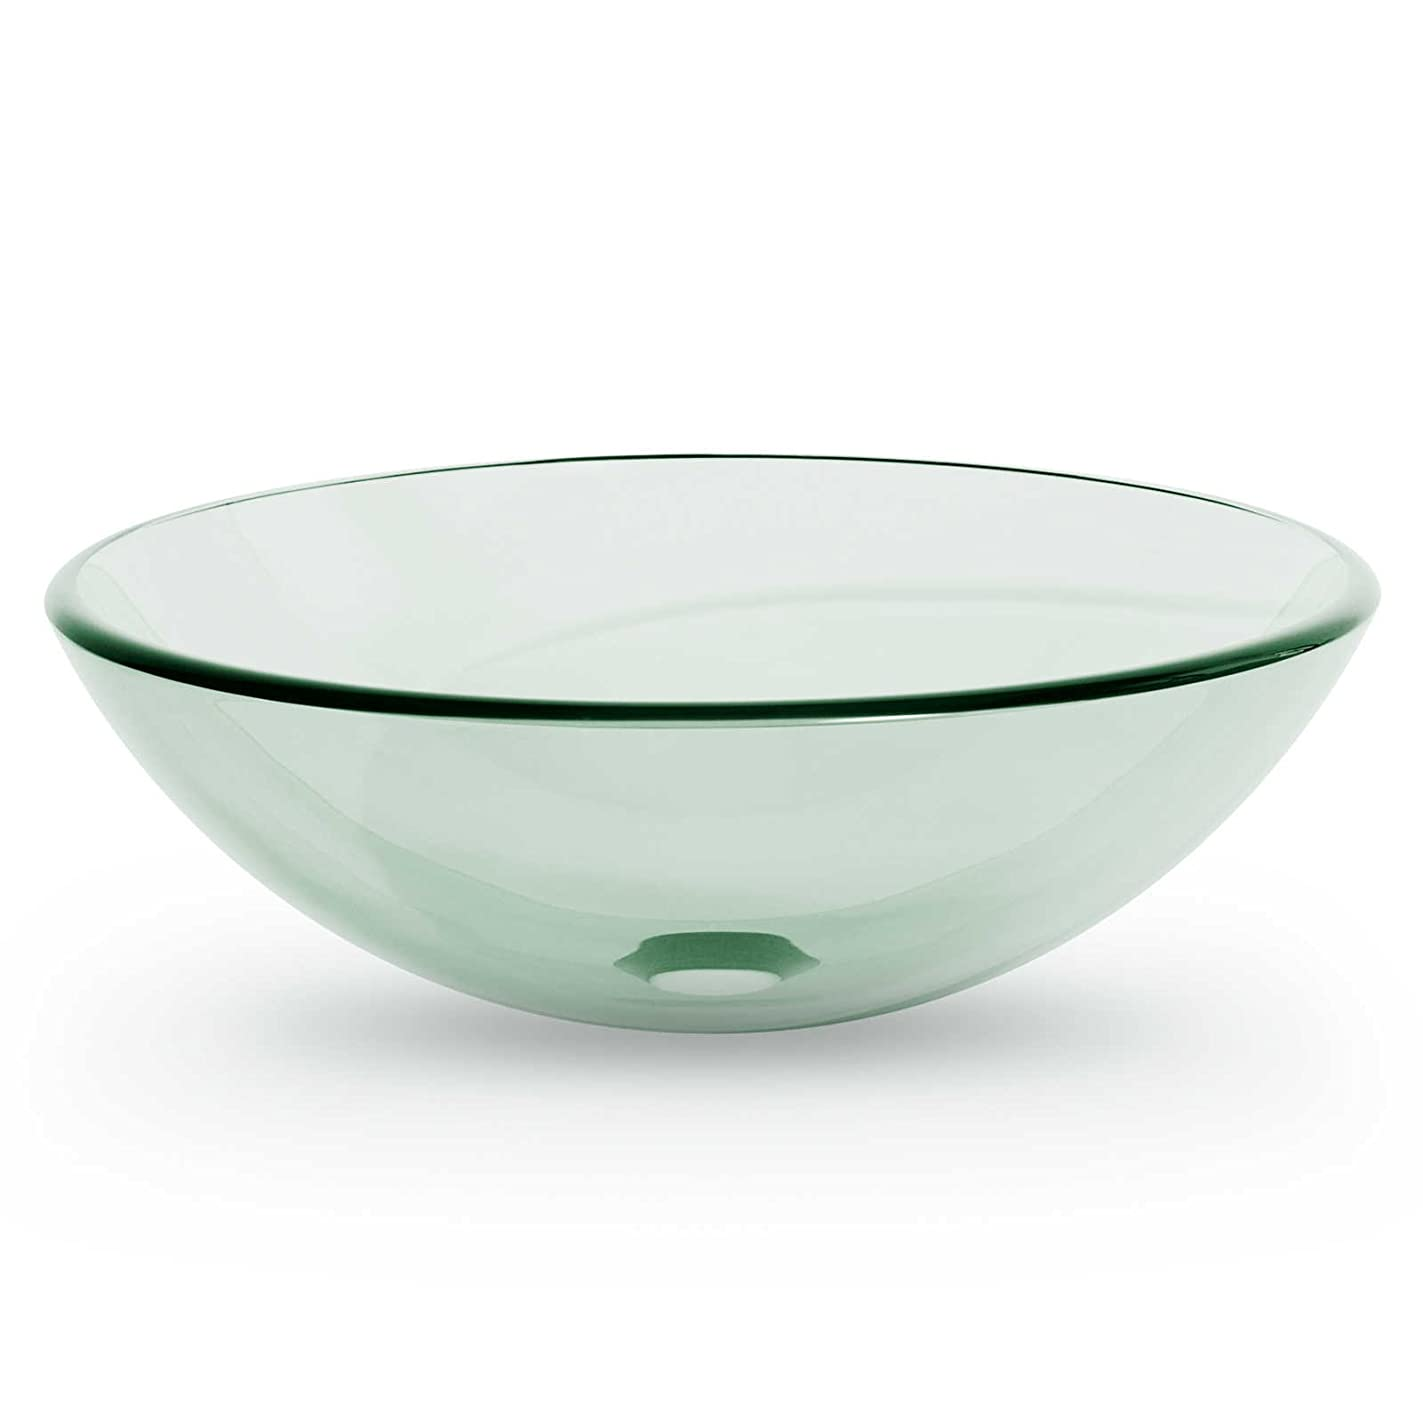 Miligore Modern Glass Vessel Sink - Above Counter Bathroom Vanity Basin Bowl - Round Clear